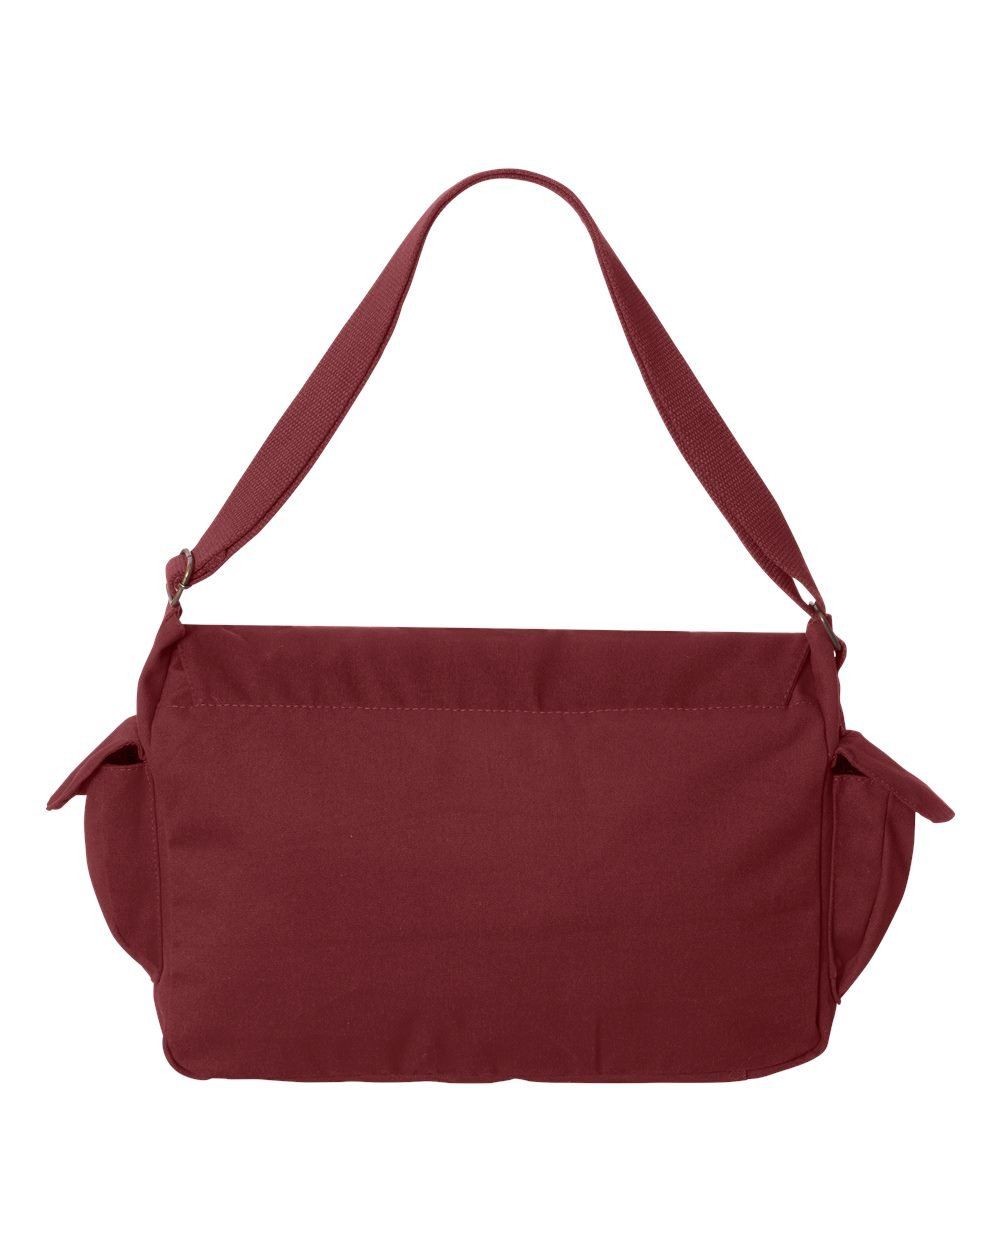 Tenacitee Survivor of the Whomping Willow Obstacle Course Maroon Brushed Canvas Messenger Bag